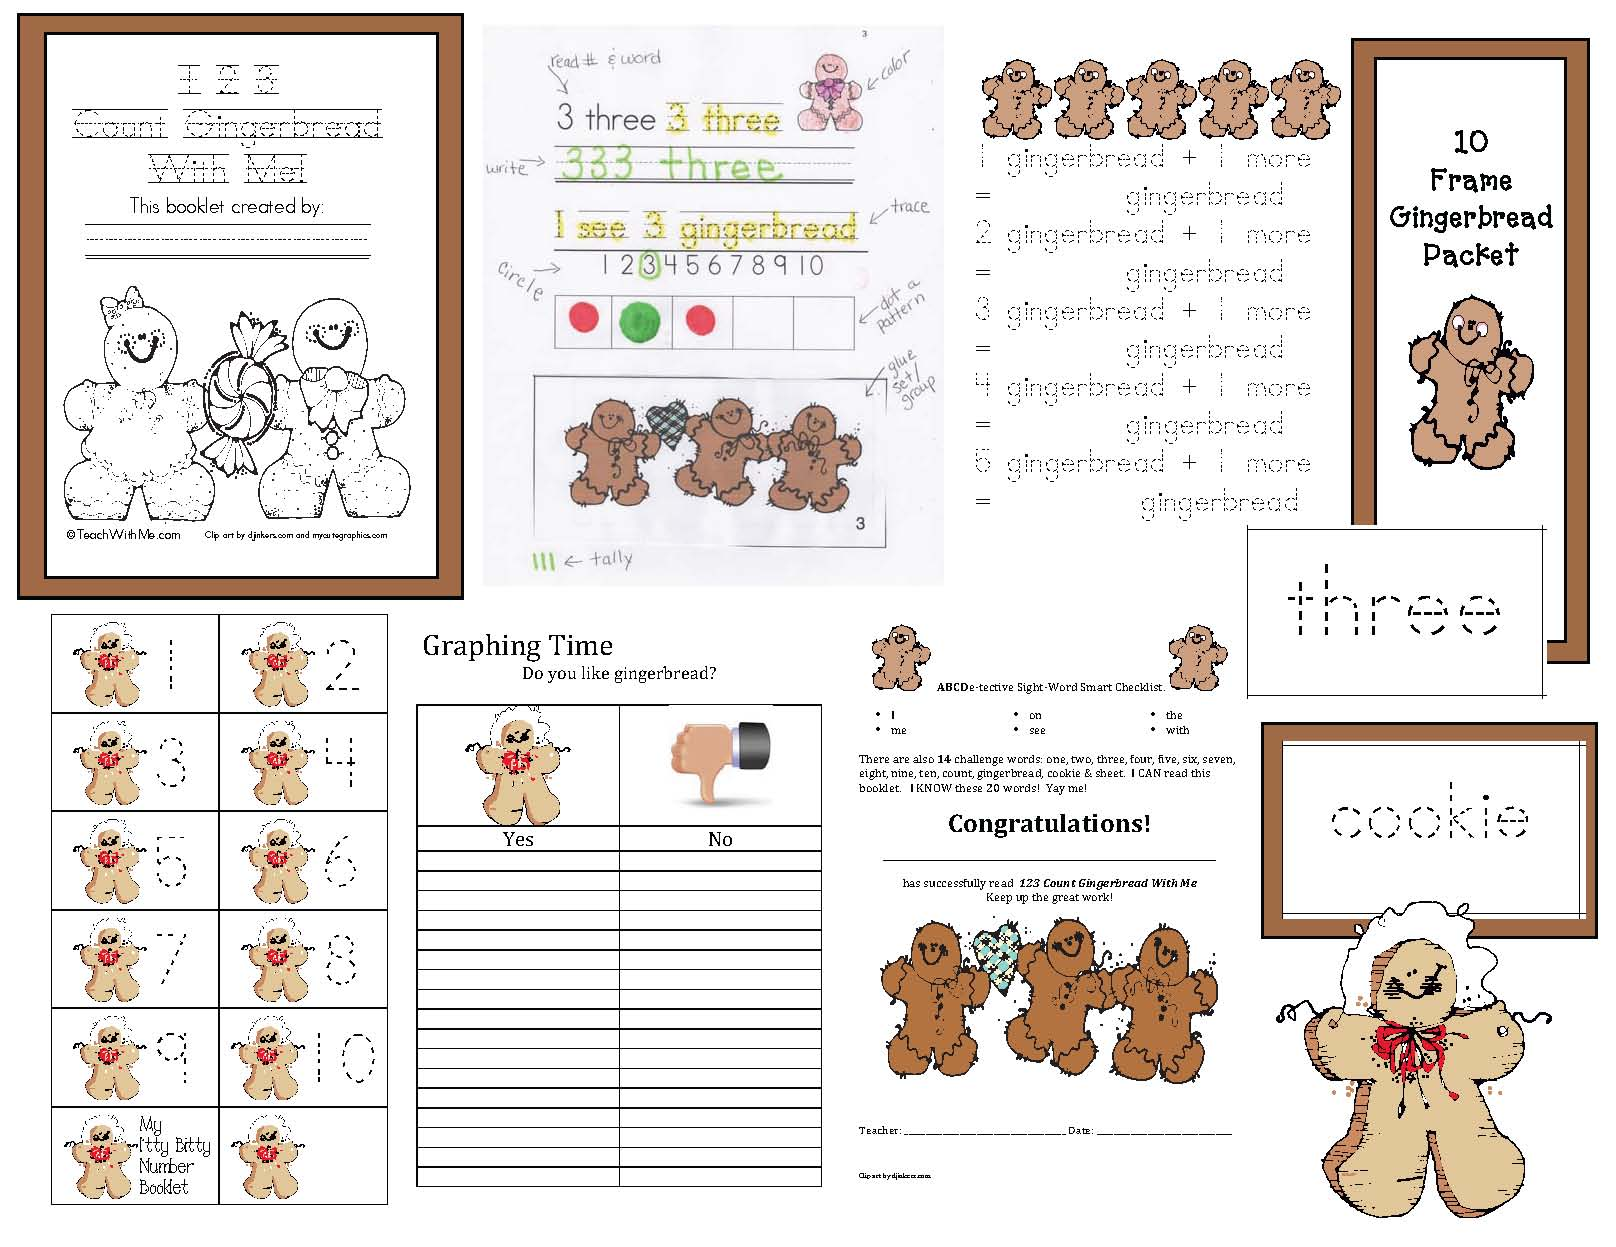 gingerbread activities, skip counting activities,10 frame templates, gingerbread 10 frames,  gingerbread centers, gingerbread math, gingerbread number cards, gingerbread lessons, common core gingerbread, gingerbread games, gingerbread certificates, skip counting with gingerbread, gingerbread bookmarks